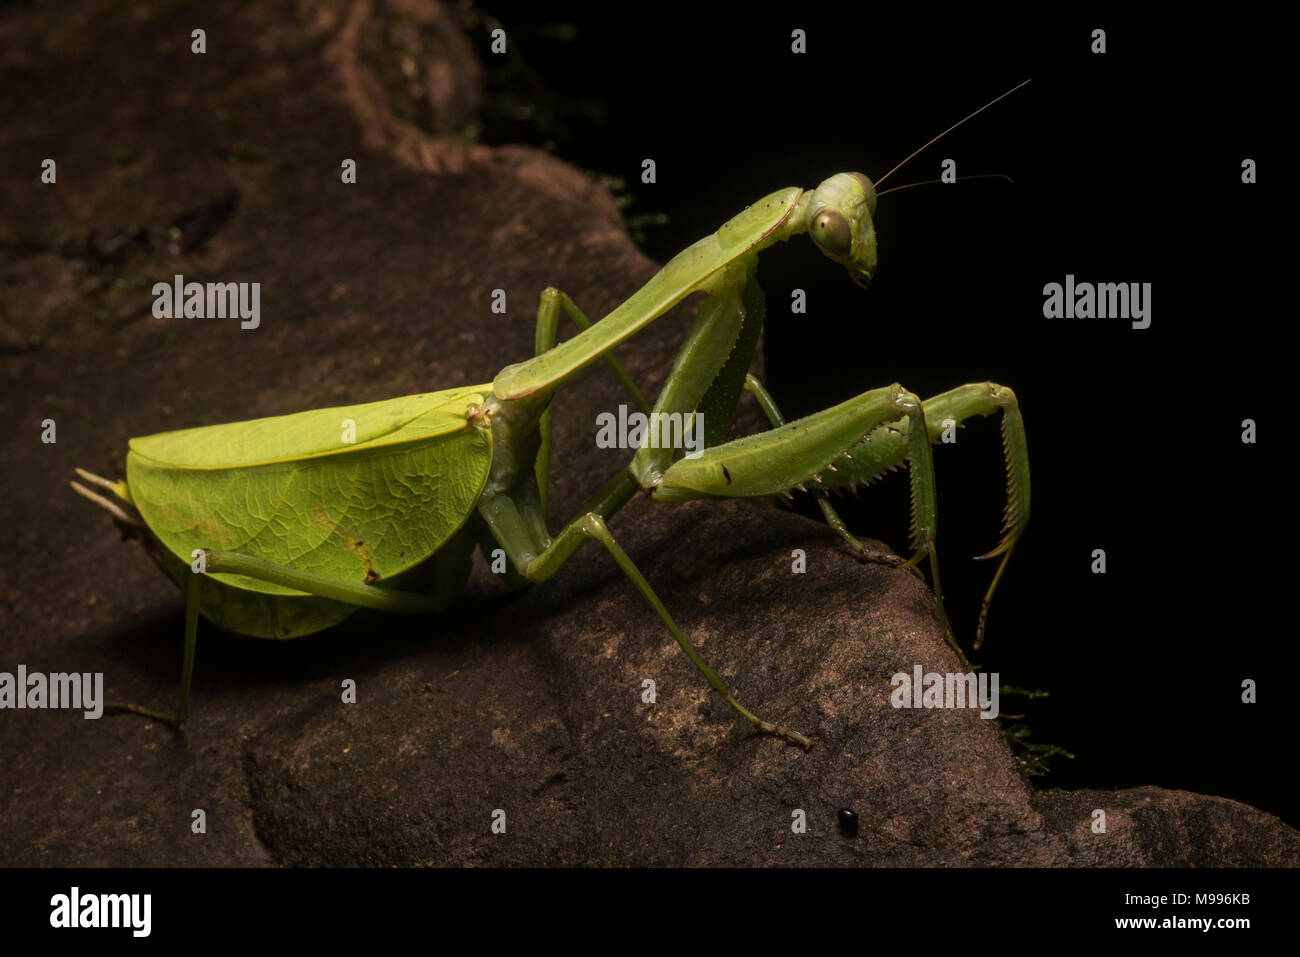 A huge female leaf mantis, a Pseudoxyops species, from Peru.  Normally it is well concealed among the leaves but it has crawled out on a rock. - Stock Image